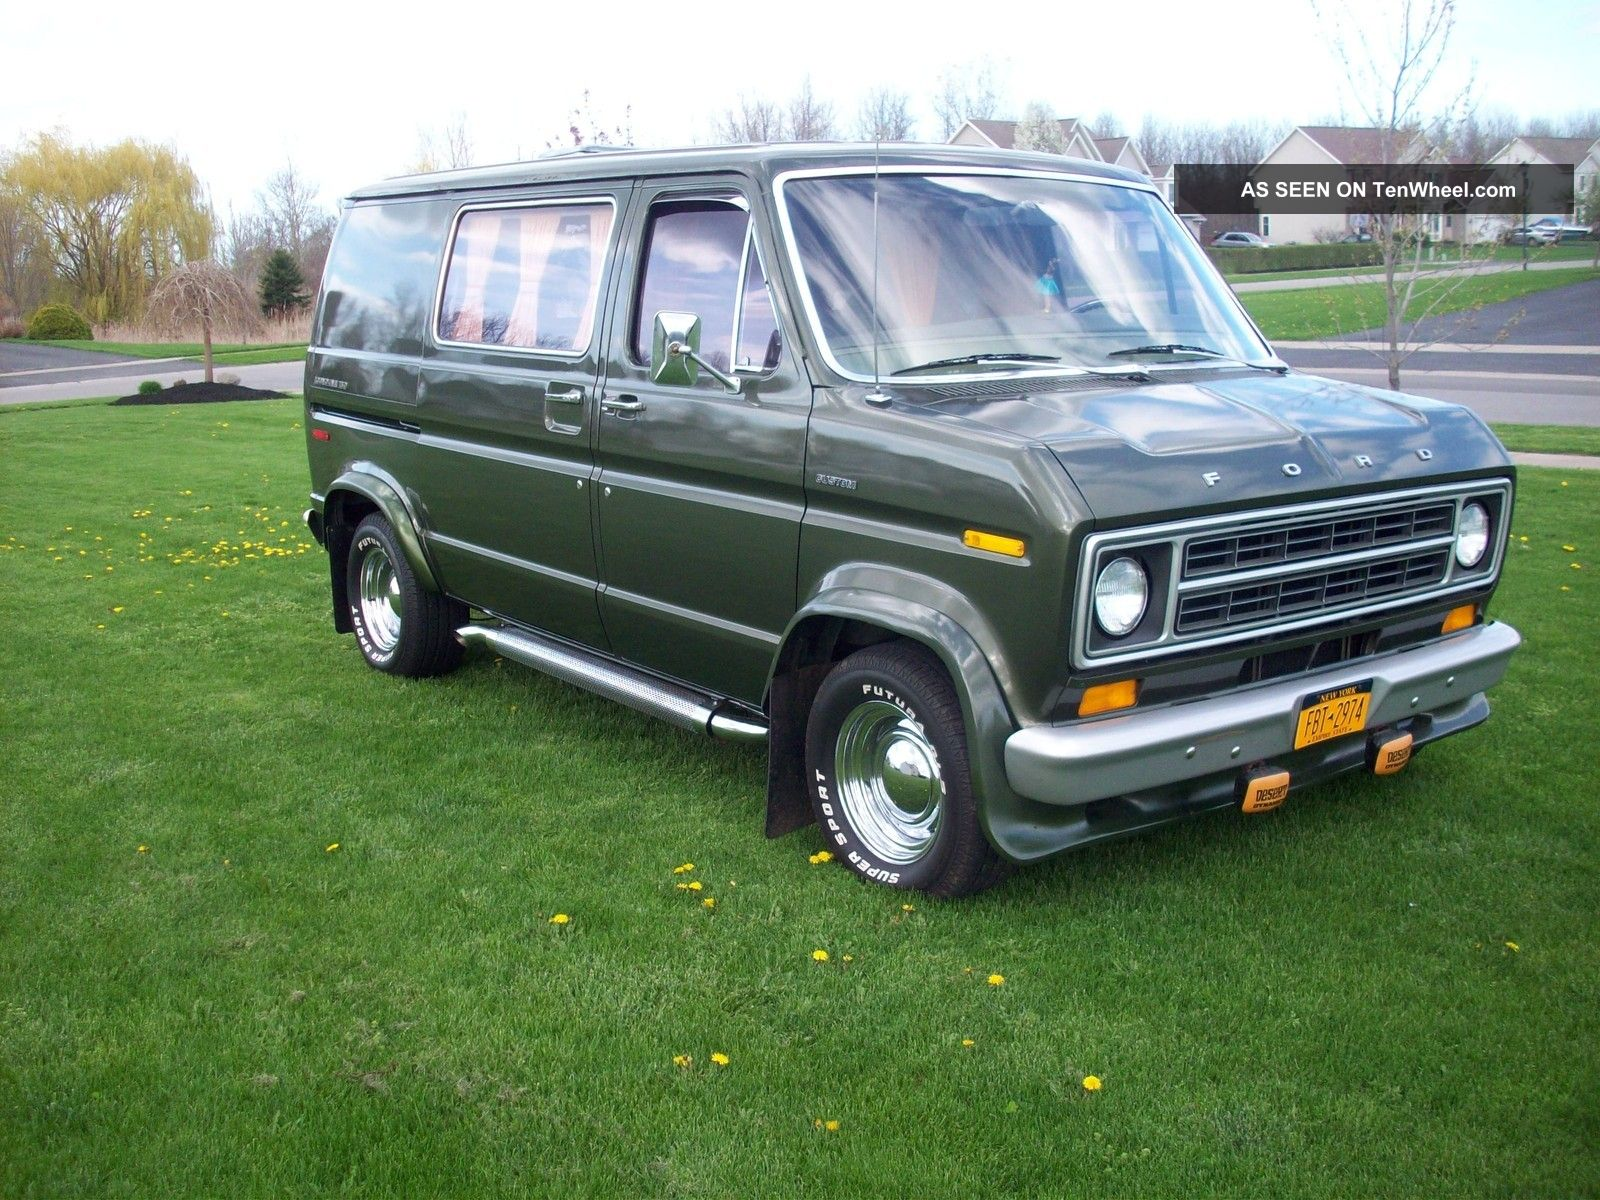 1975 Ford E - 150 Econoline Custom 70s Shag Retro Van Show 1970s E-Series Van photo